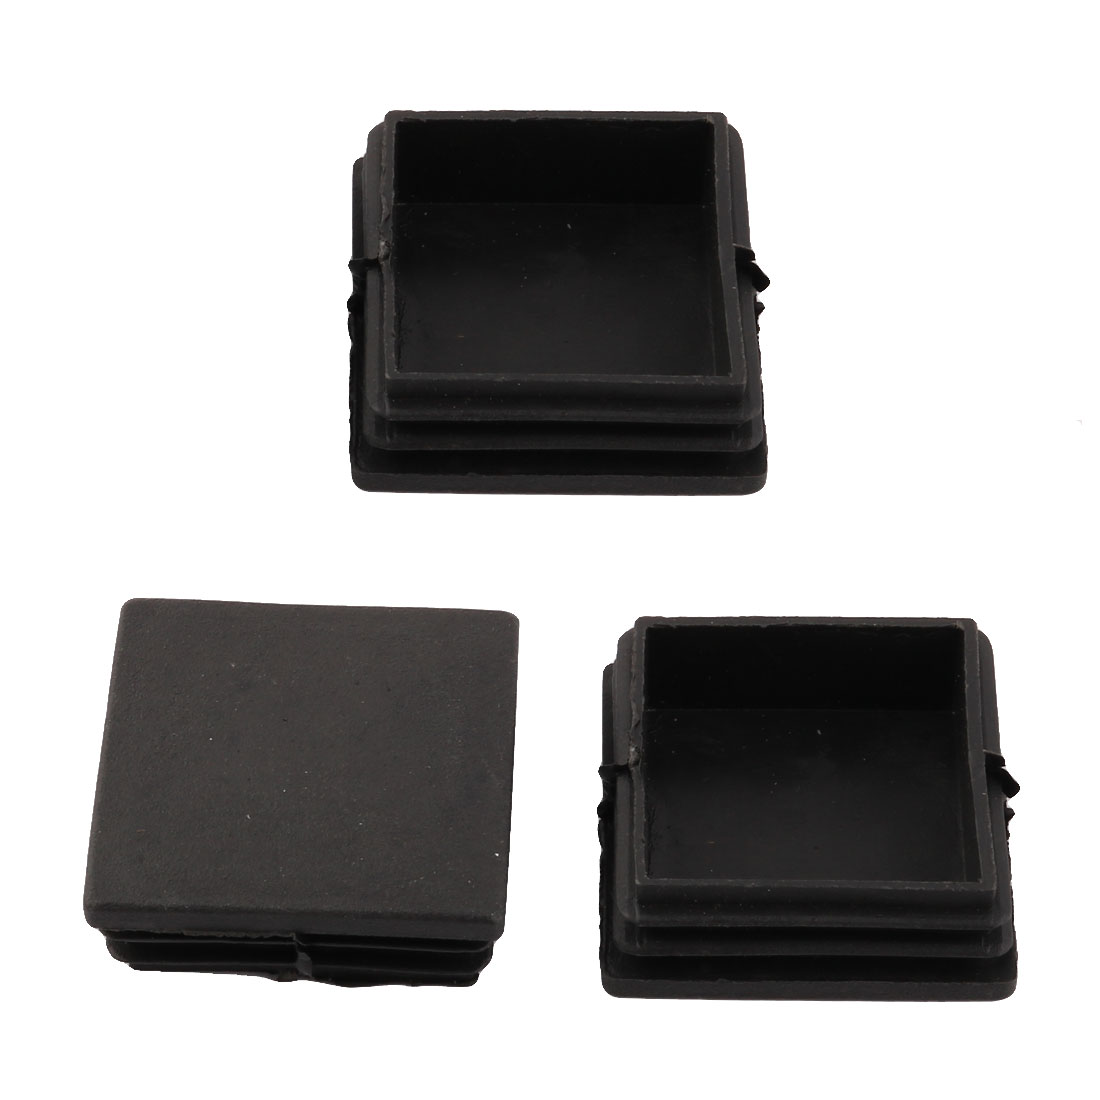 Home Office Plastic Square Shaped Table Chair Desk Leg Foot Tube Pipe Insert Cover Black 3pcs